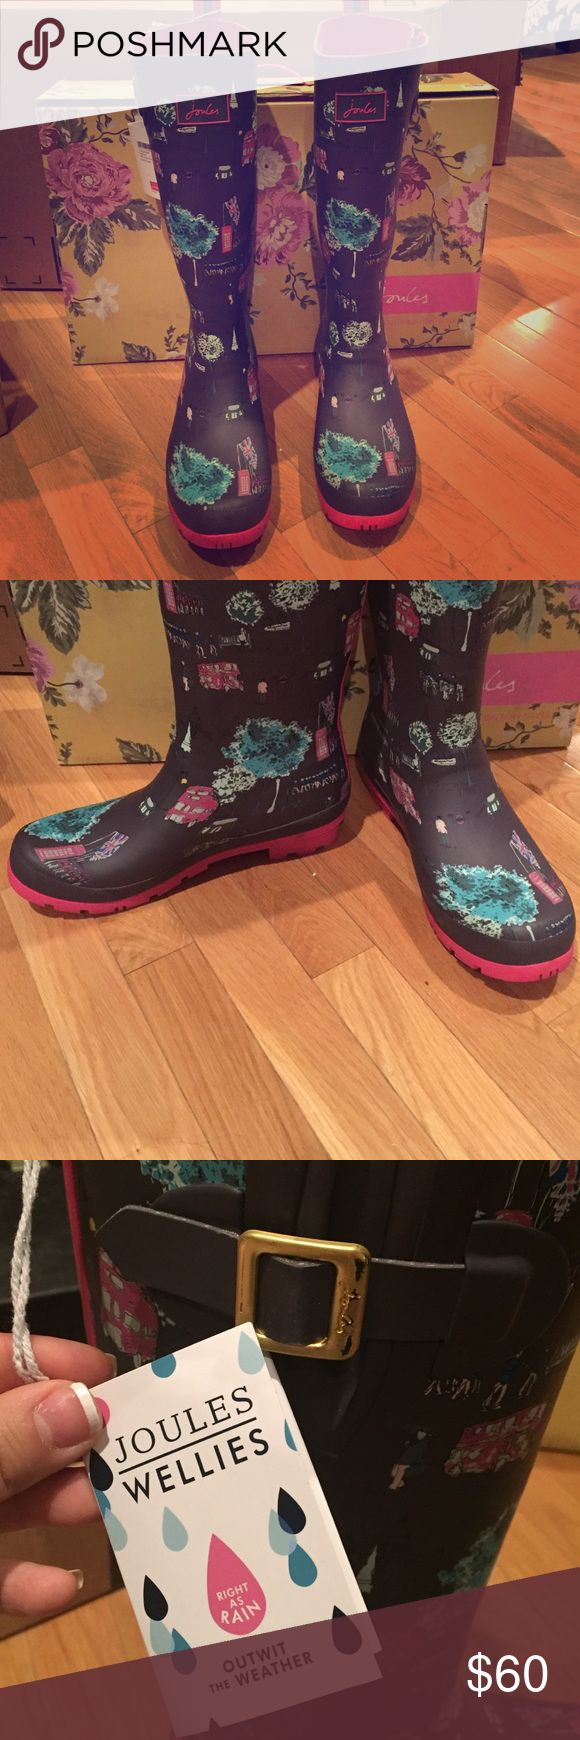 NIB Joules Welly Rain Boots Slate London Blue 10 New in box rain boots  size 10. With tags. Will ship in original shoe box. Joules Shoes Winter & Rain Boots